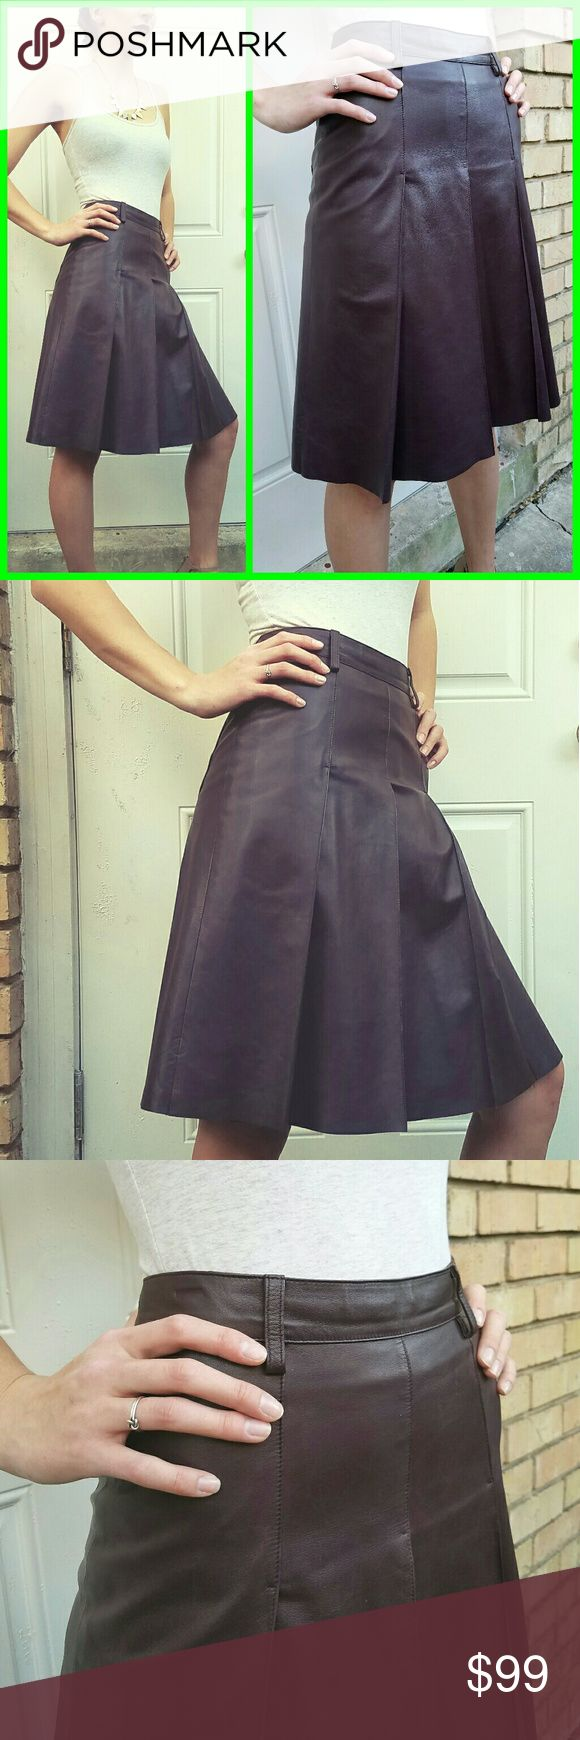 """Vintage  $1100 MIU MIU Wine LEATHER A-LINE Skirt ABSOLUTELY FABULOUS vintage 2003 MIU MIU PRADA-era Wine Leather A-LINE Skirt...TO DIE FOR!   Thick, durable AND EXTREMELY HIGH-END  ******CURRENT RETAIL FOR MIU MIU A-LINE LEATHER SKIRT OF THIS QUALITY IS $1100.******   RARE COLOR IS BEAUTIFUL and goes with EVERYTHING!   Marked a size IT 40 - fits a current U.S size Small:  Approx 24"""" long, 27/28"""" waist, up to 40"""" at hips~ Vintage  Skirts A-Line or Full"""